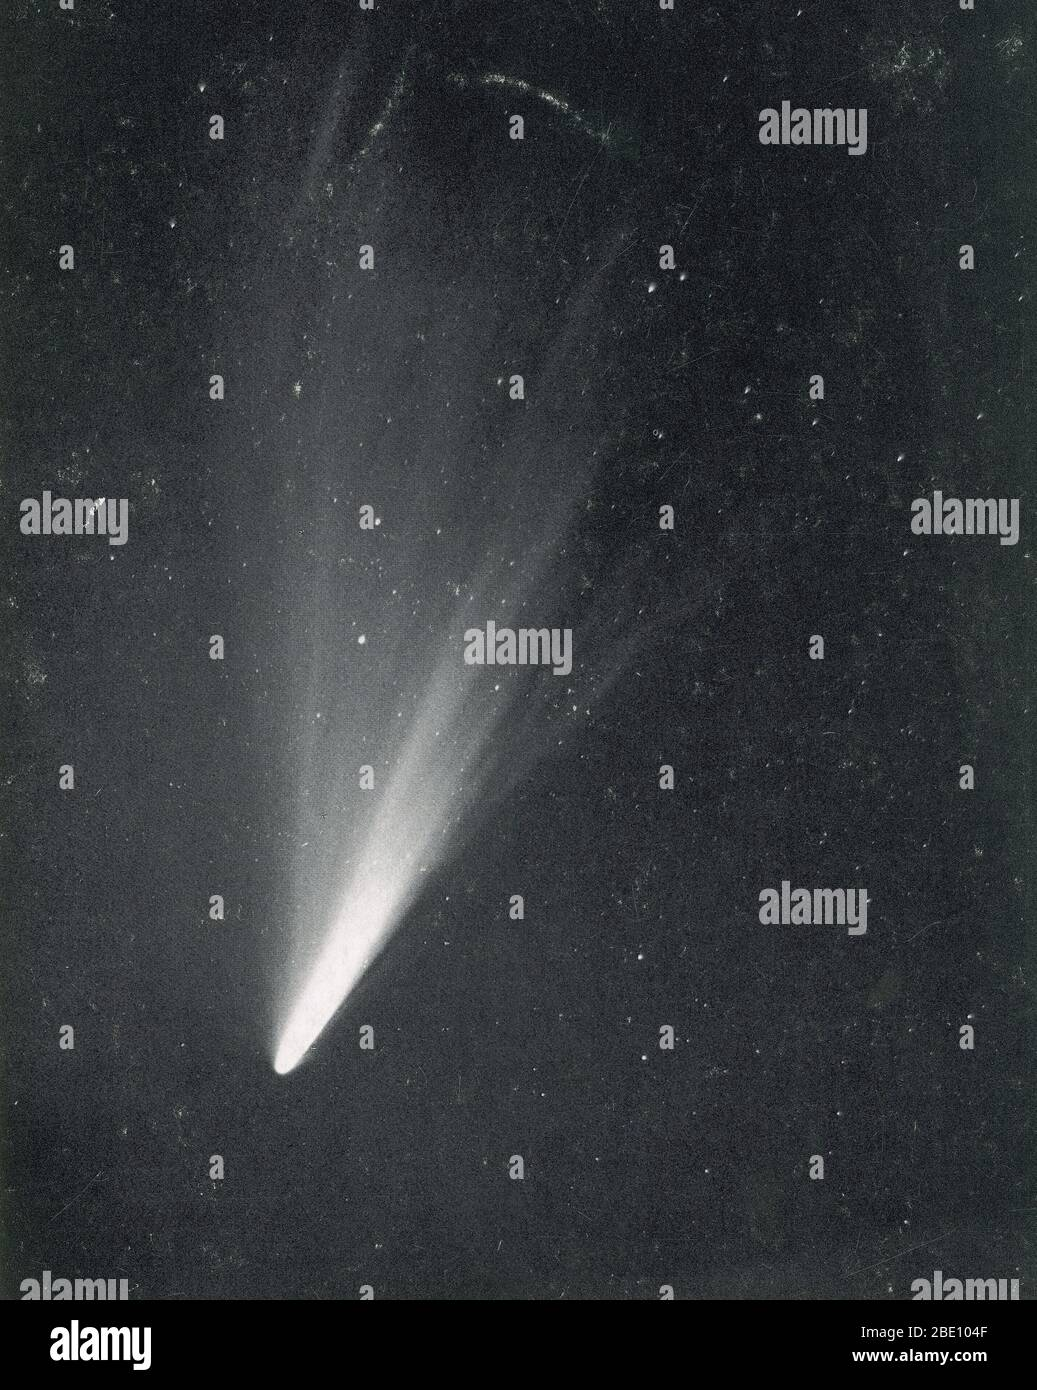 Comet West as photographed from the Lick Observatory in 1976 March. Comet West, officially known as C/1975 V1, 1976 VI, and 1975n, was an awesome comet that was sometimes considered to qualify for the status of great comet. A Great Comet is a comet that becomes exceptionally bright; there is no official definition, often the term will be attached to comets that become bright enough to be noticed by casual observers who are not actively looking for them, and become well known outside the astronomical community. Great Comets are rare; on average only one will appear in a decade. While comets are Stock Photo